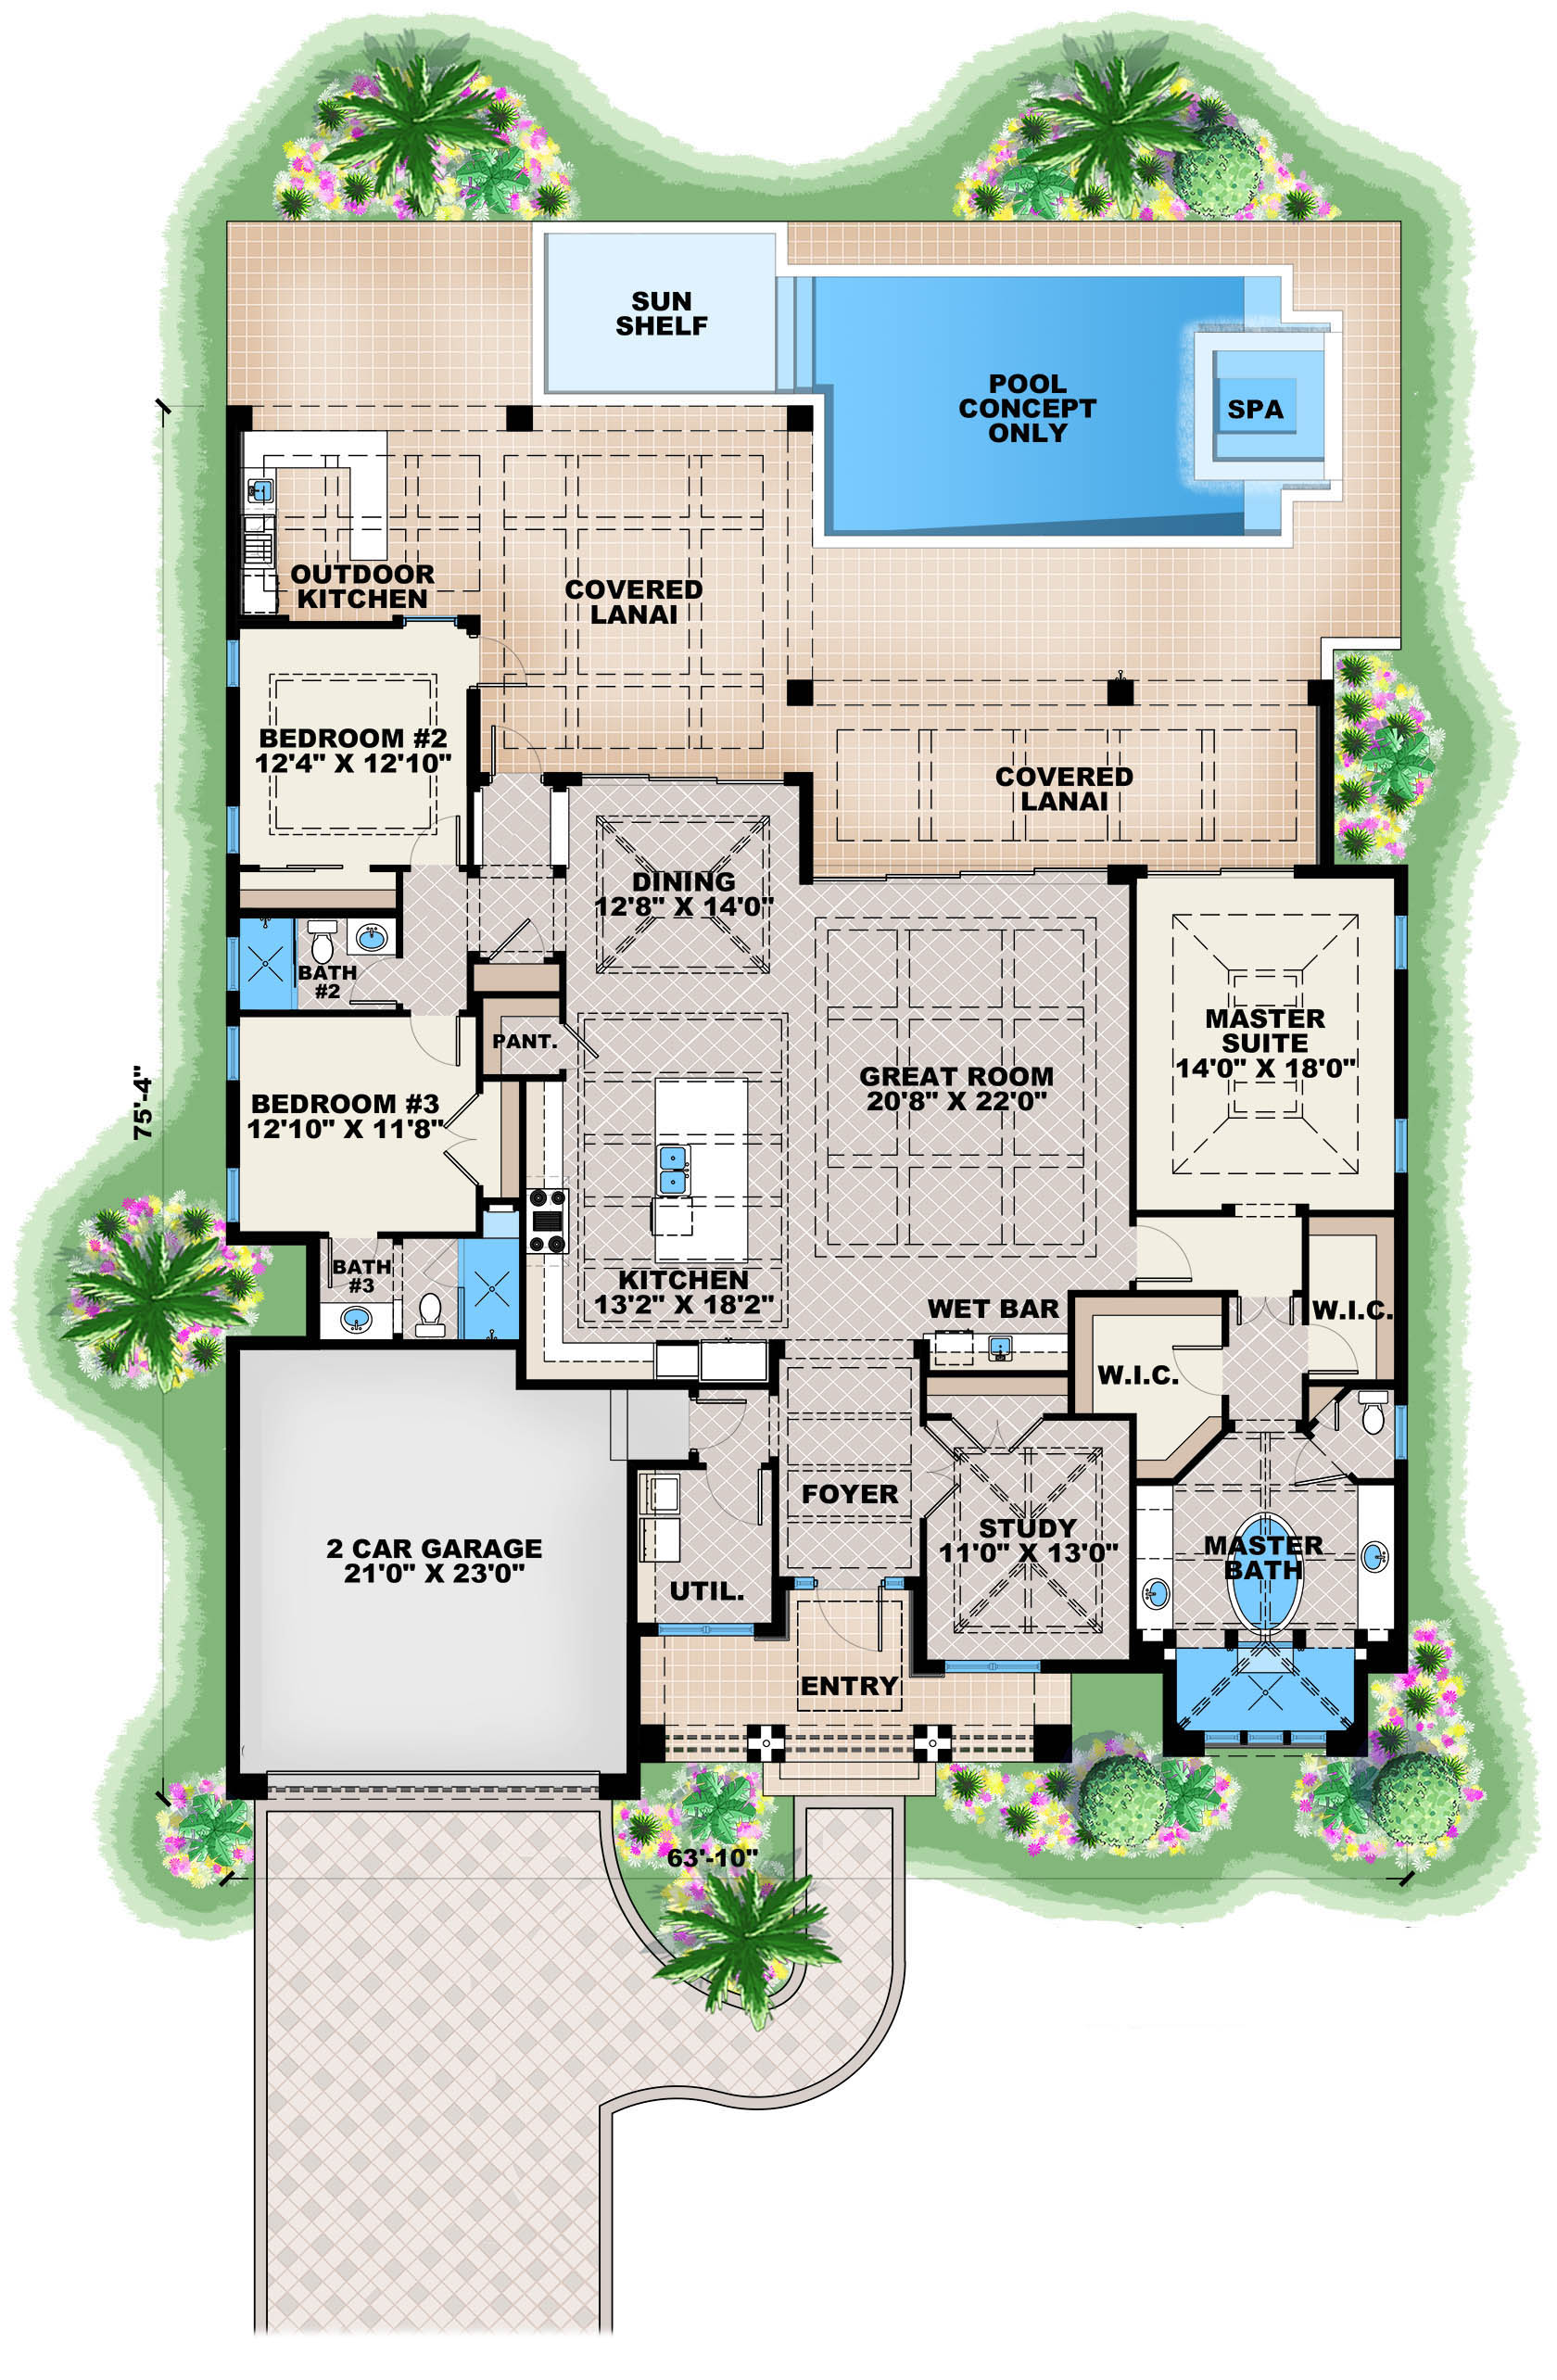 Contemporary house plan 175 1134 3 bedrm 2684 sq ft for Home design layout plan